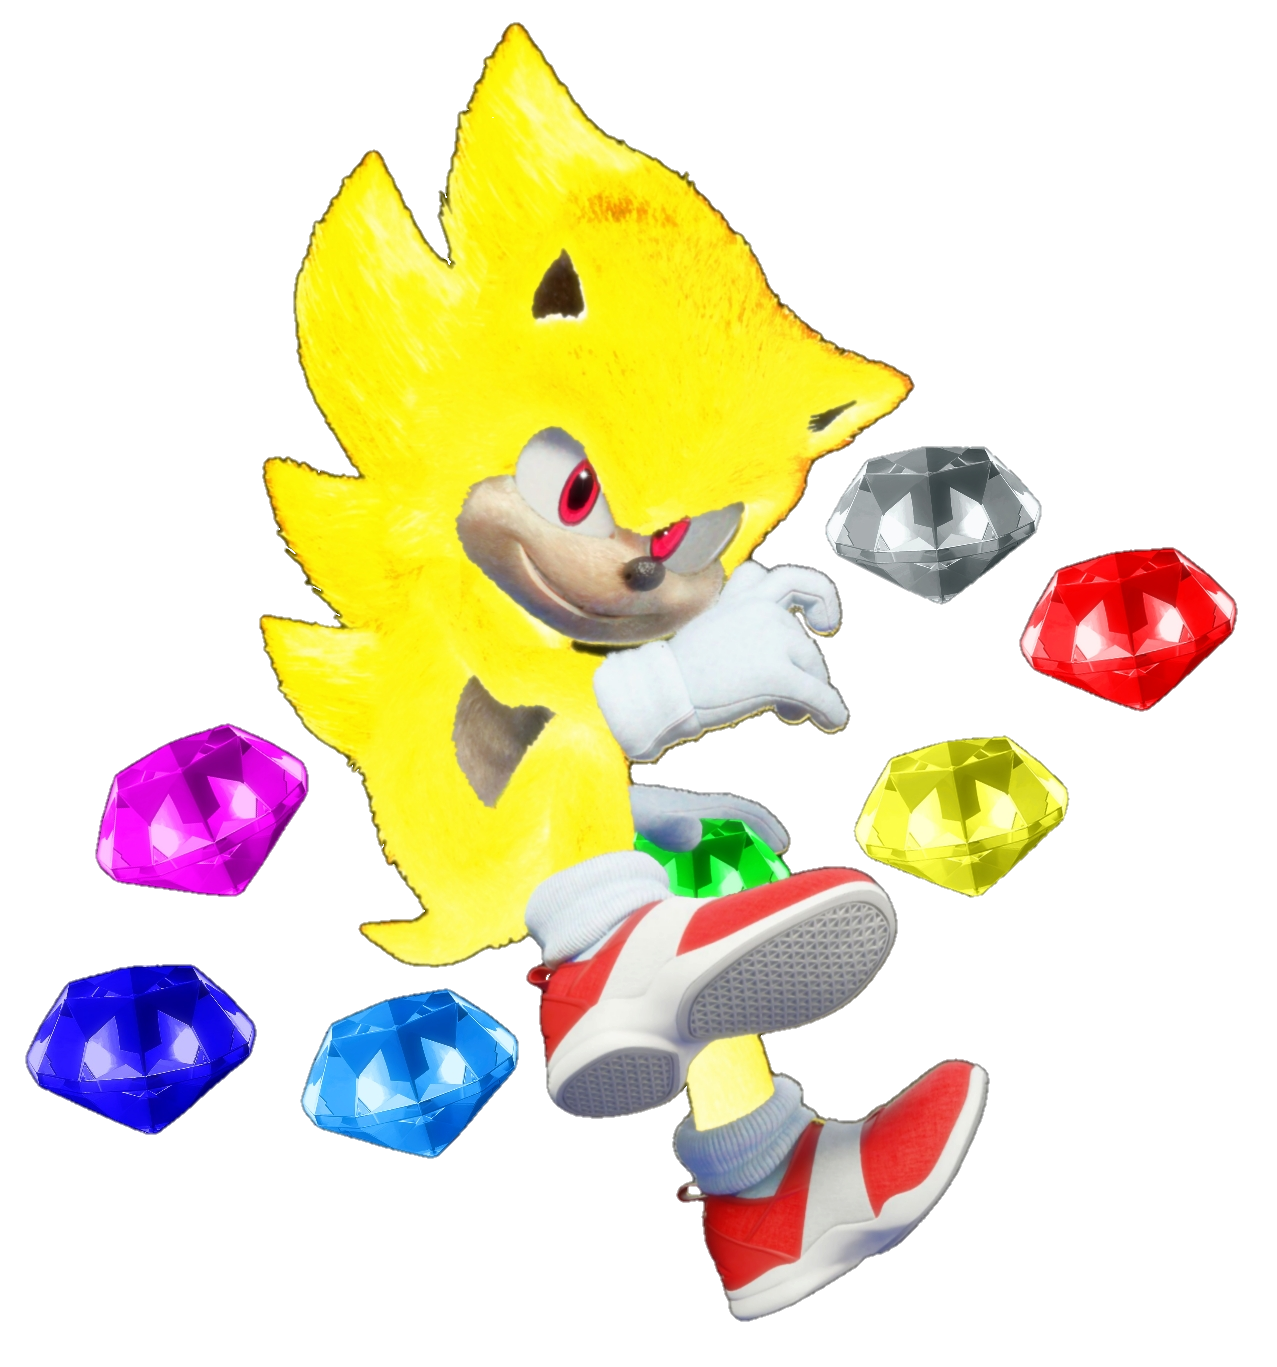 Super Sonic With The Chaos Emeralds In 2020 Hedgehog Movie Mario Characters Pikachu